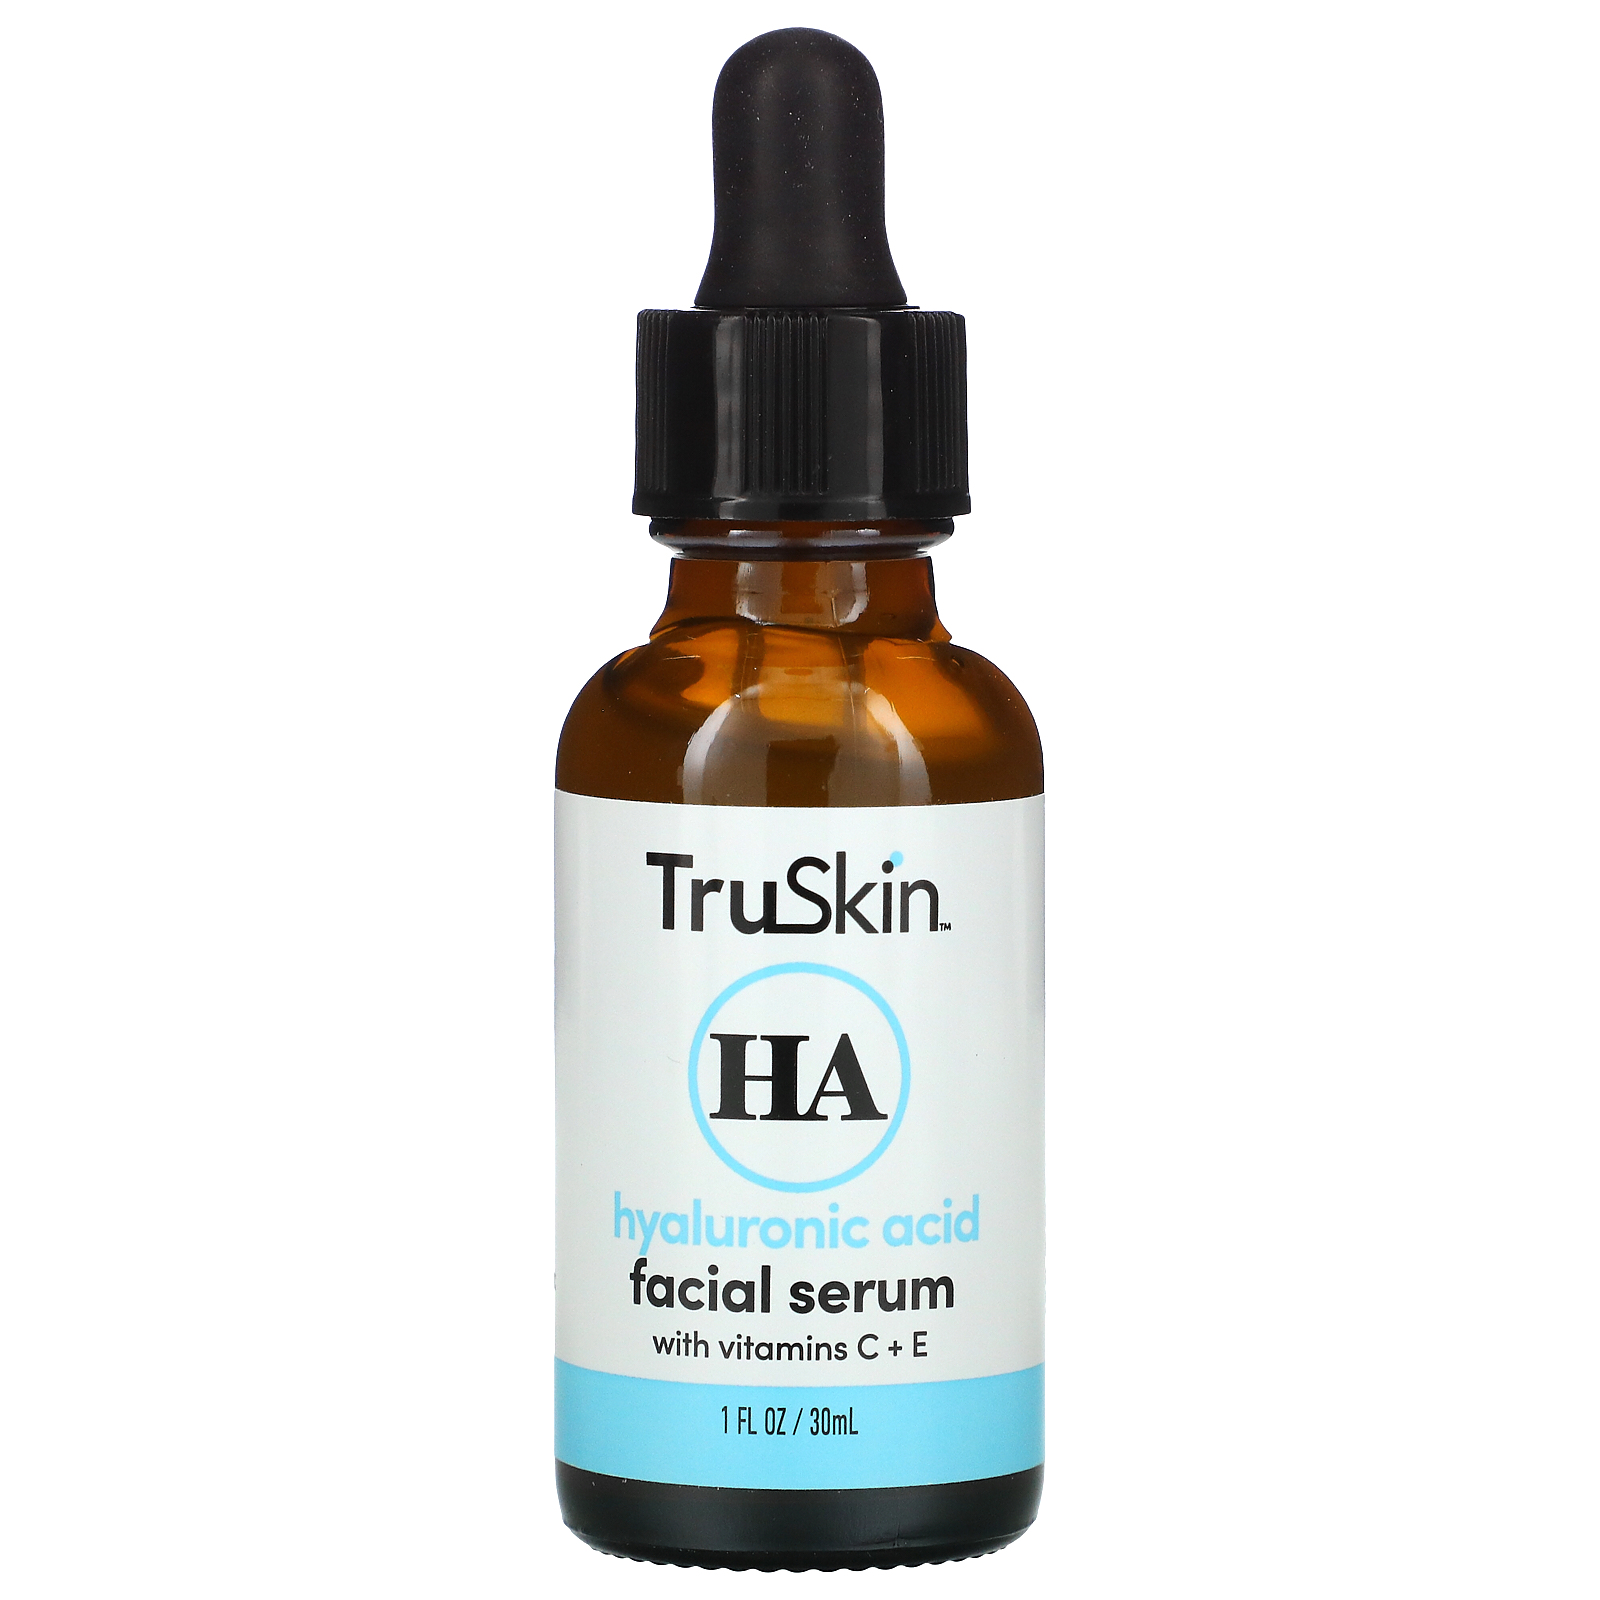 TruSkin, Hyaluronic Acid Facial Serum, 1 fl oz (30 ml)